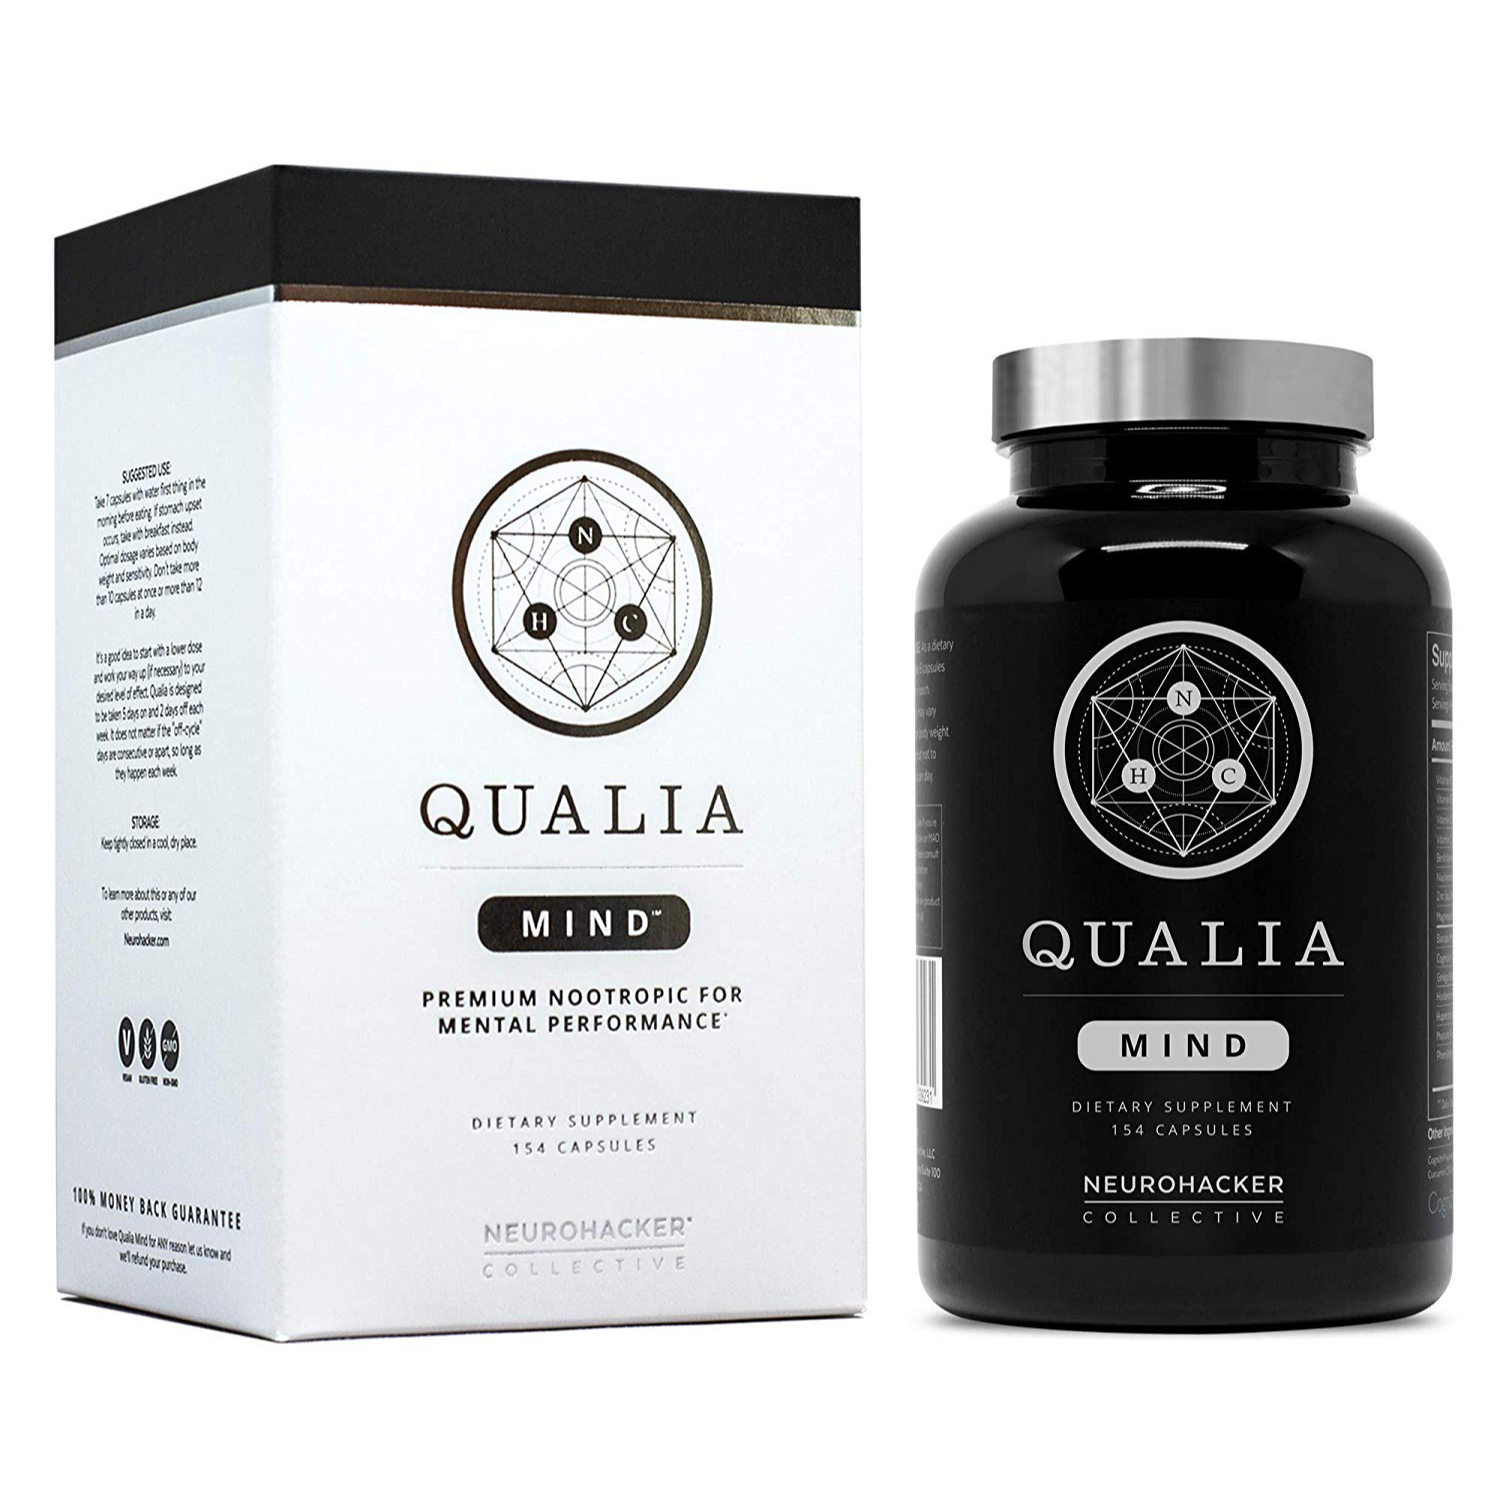 Qualia Mind Review Image